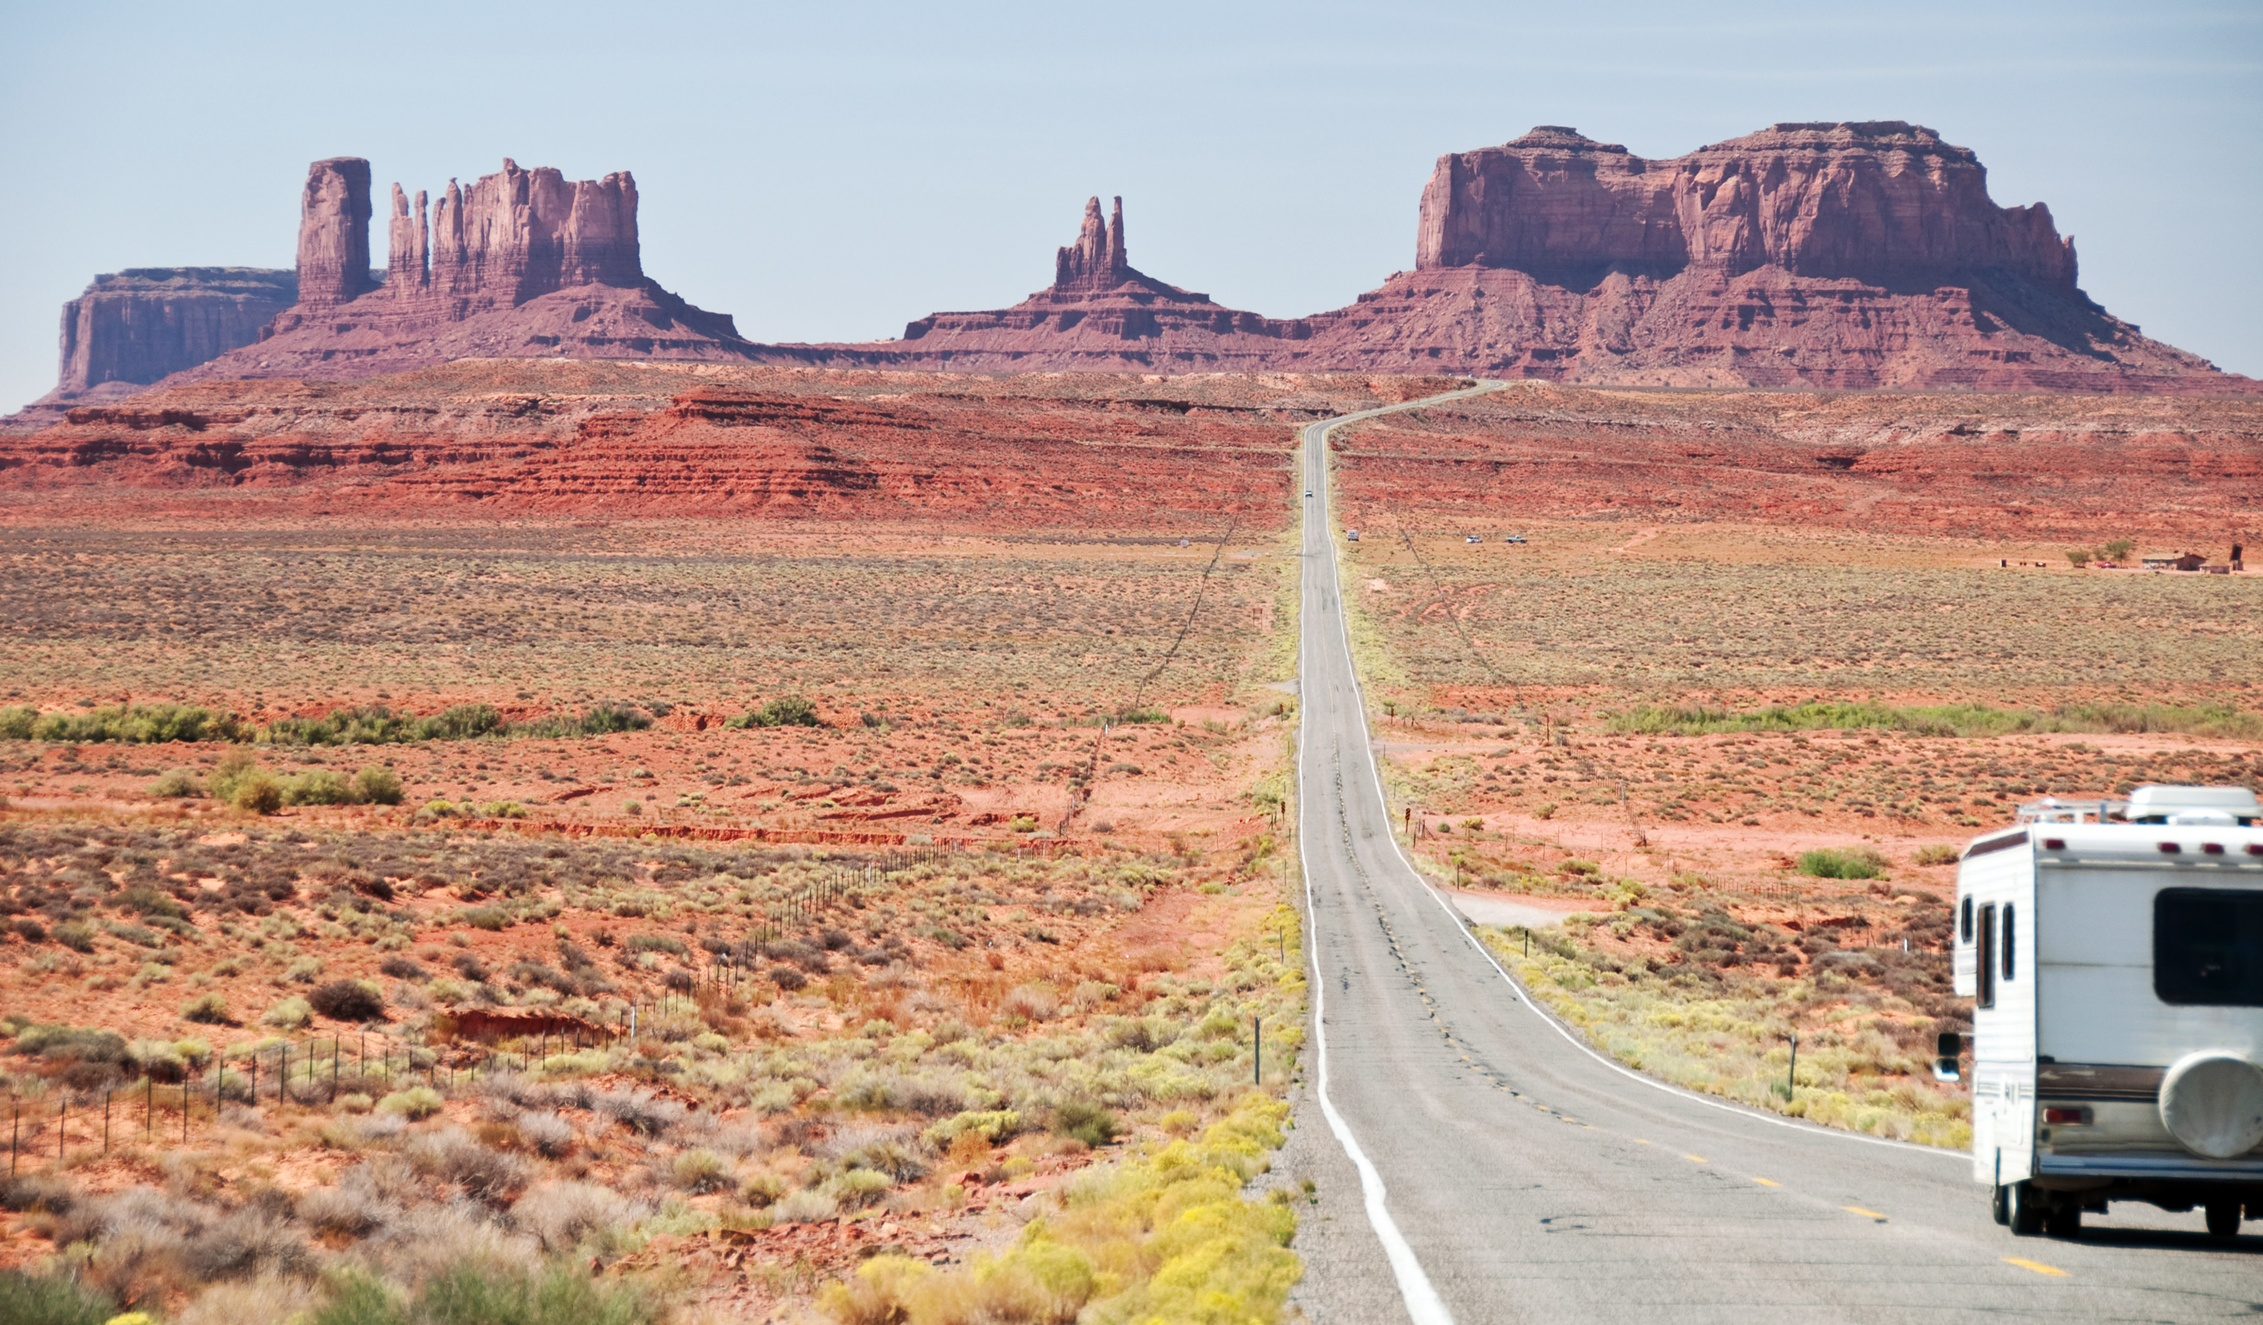 RV motorhome entering monument valley, utah